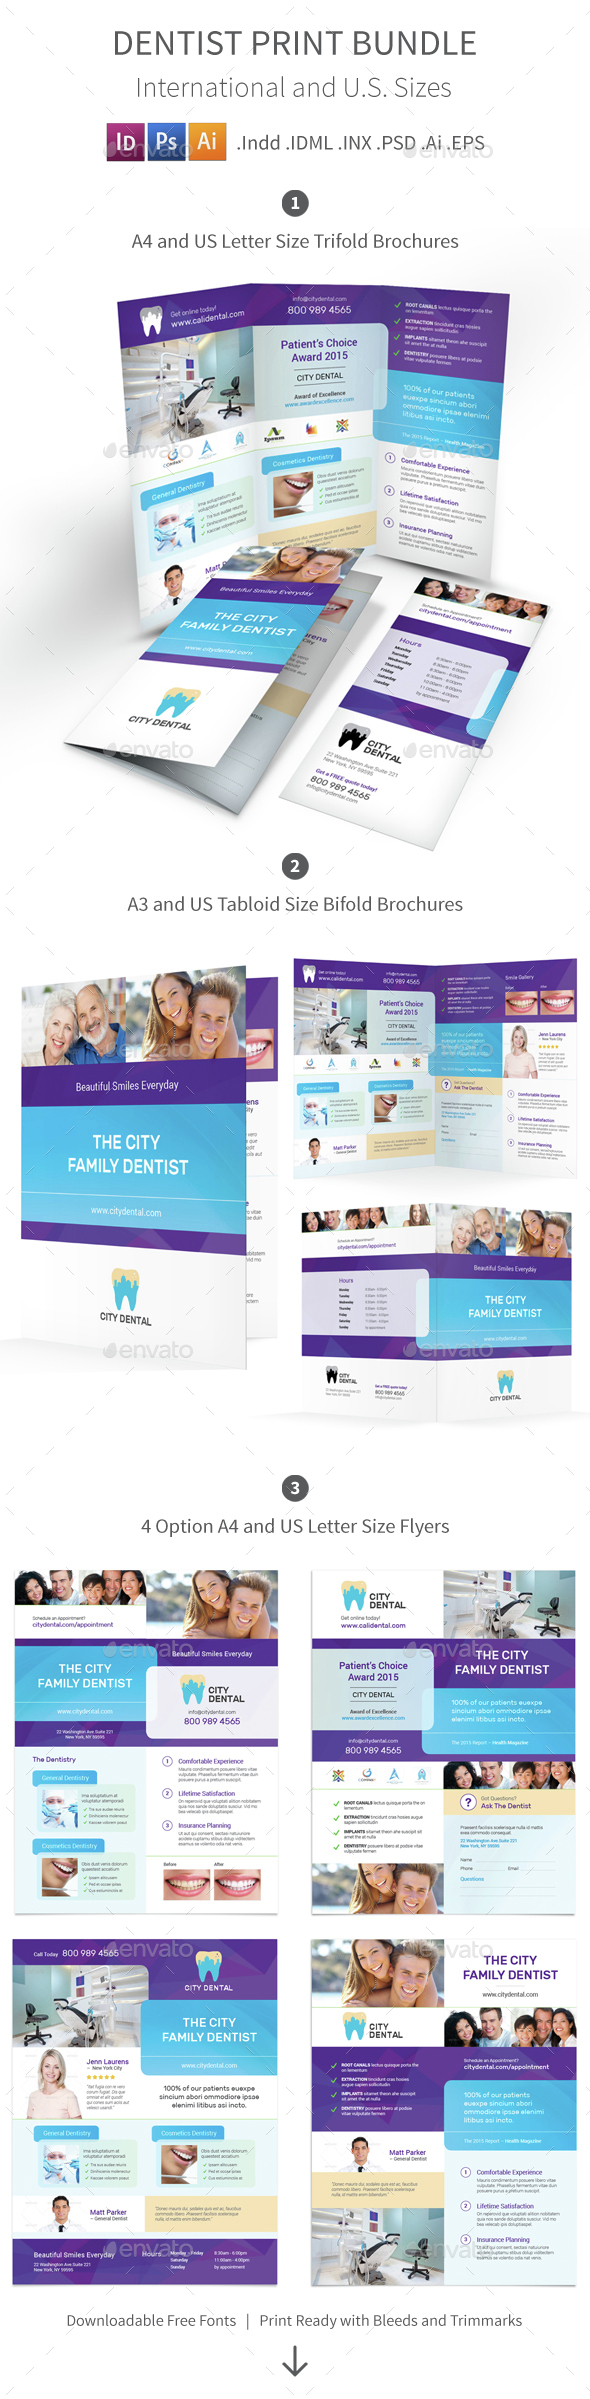 Dentist Print Bundle 4 - Informational Brochures